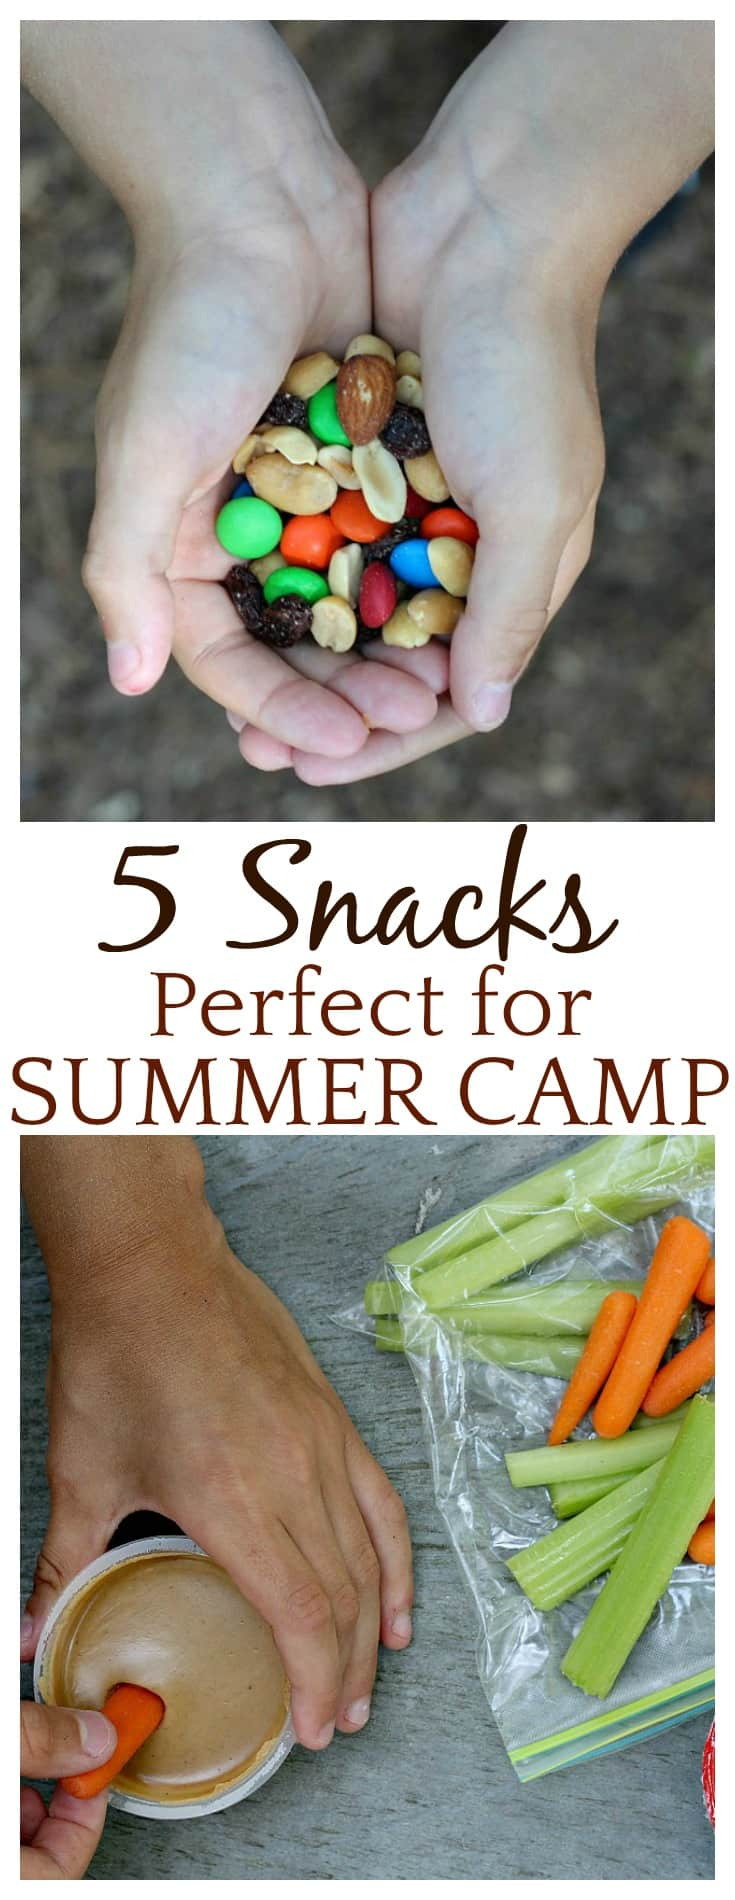 Summer camps keep kids extremely busy! Help keep heir energy levels up by packing hearty snacks that contain protein. This list contains 5 perfect summer camp snacks that your kids are sure to love!